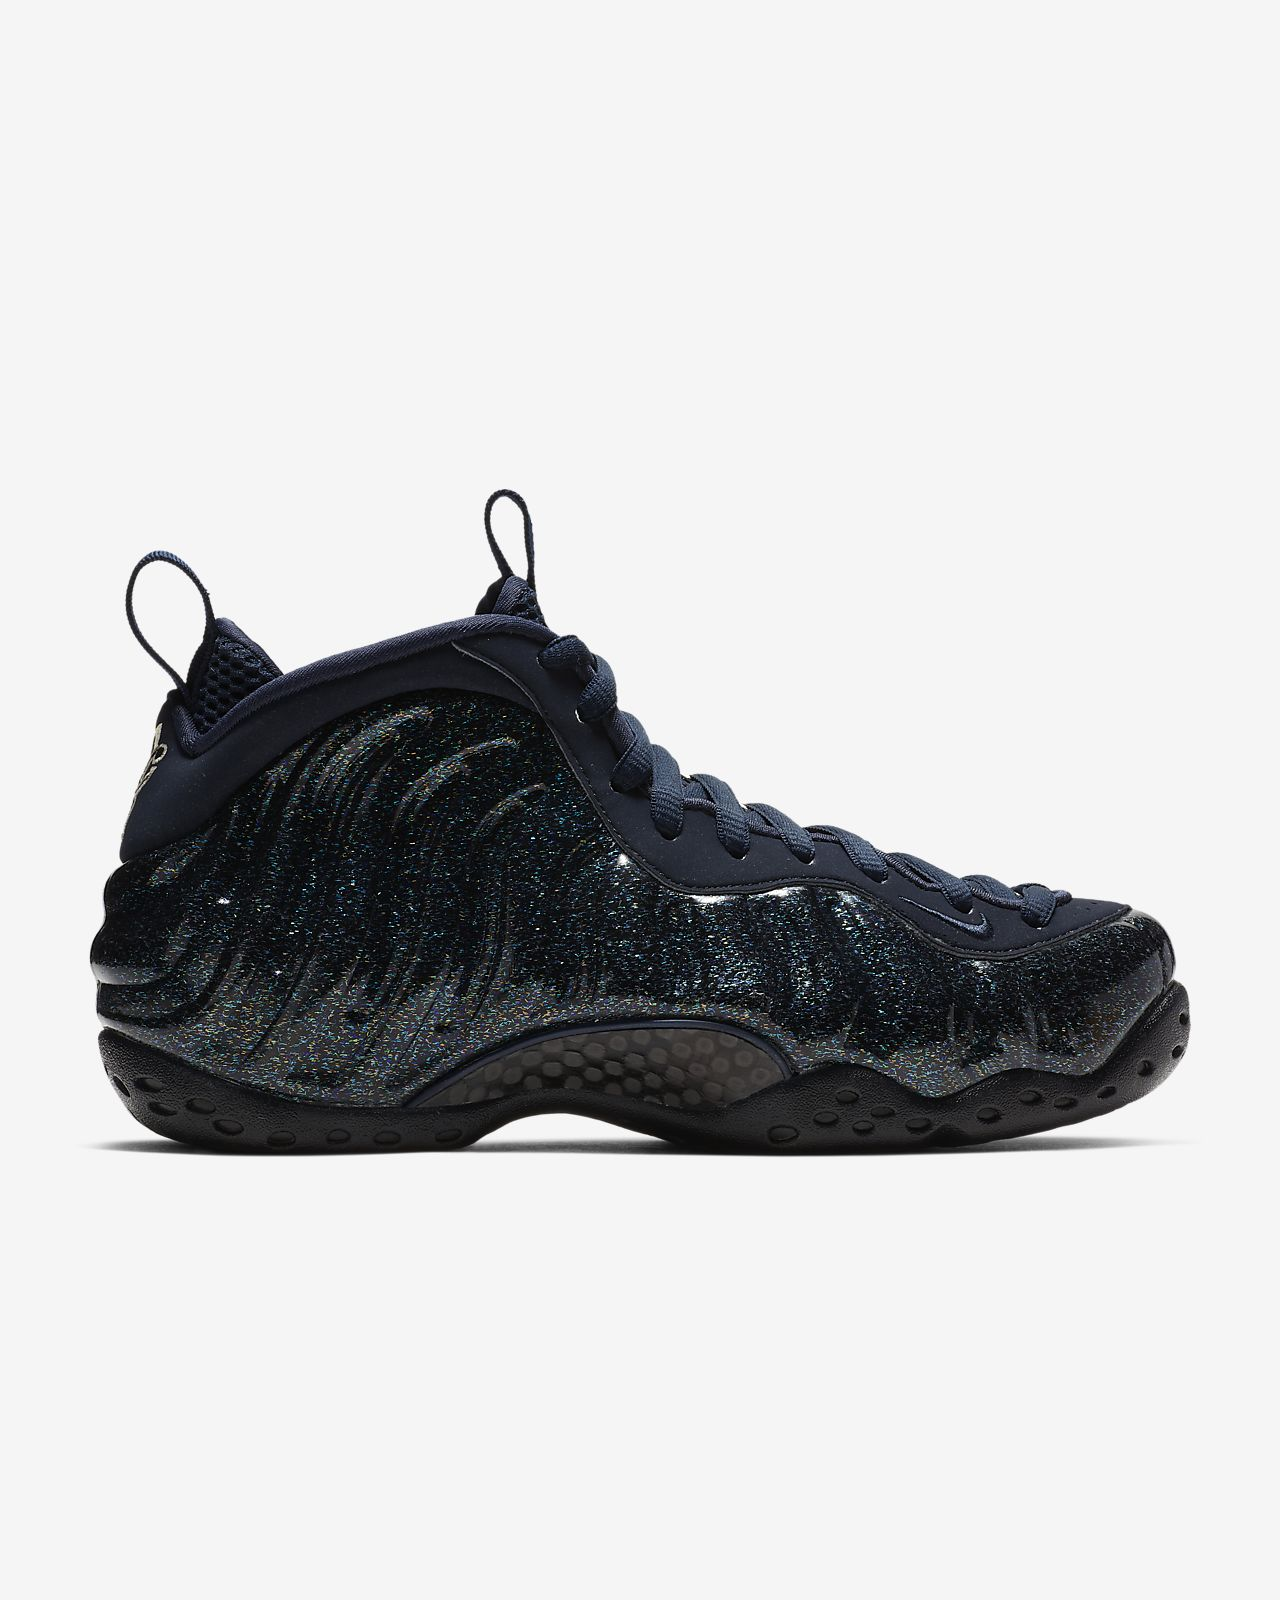 28d3b0bb1e167 Nike Air Foamposite 1 Women s Shoe. Nike.com